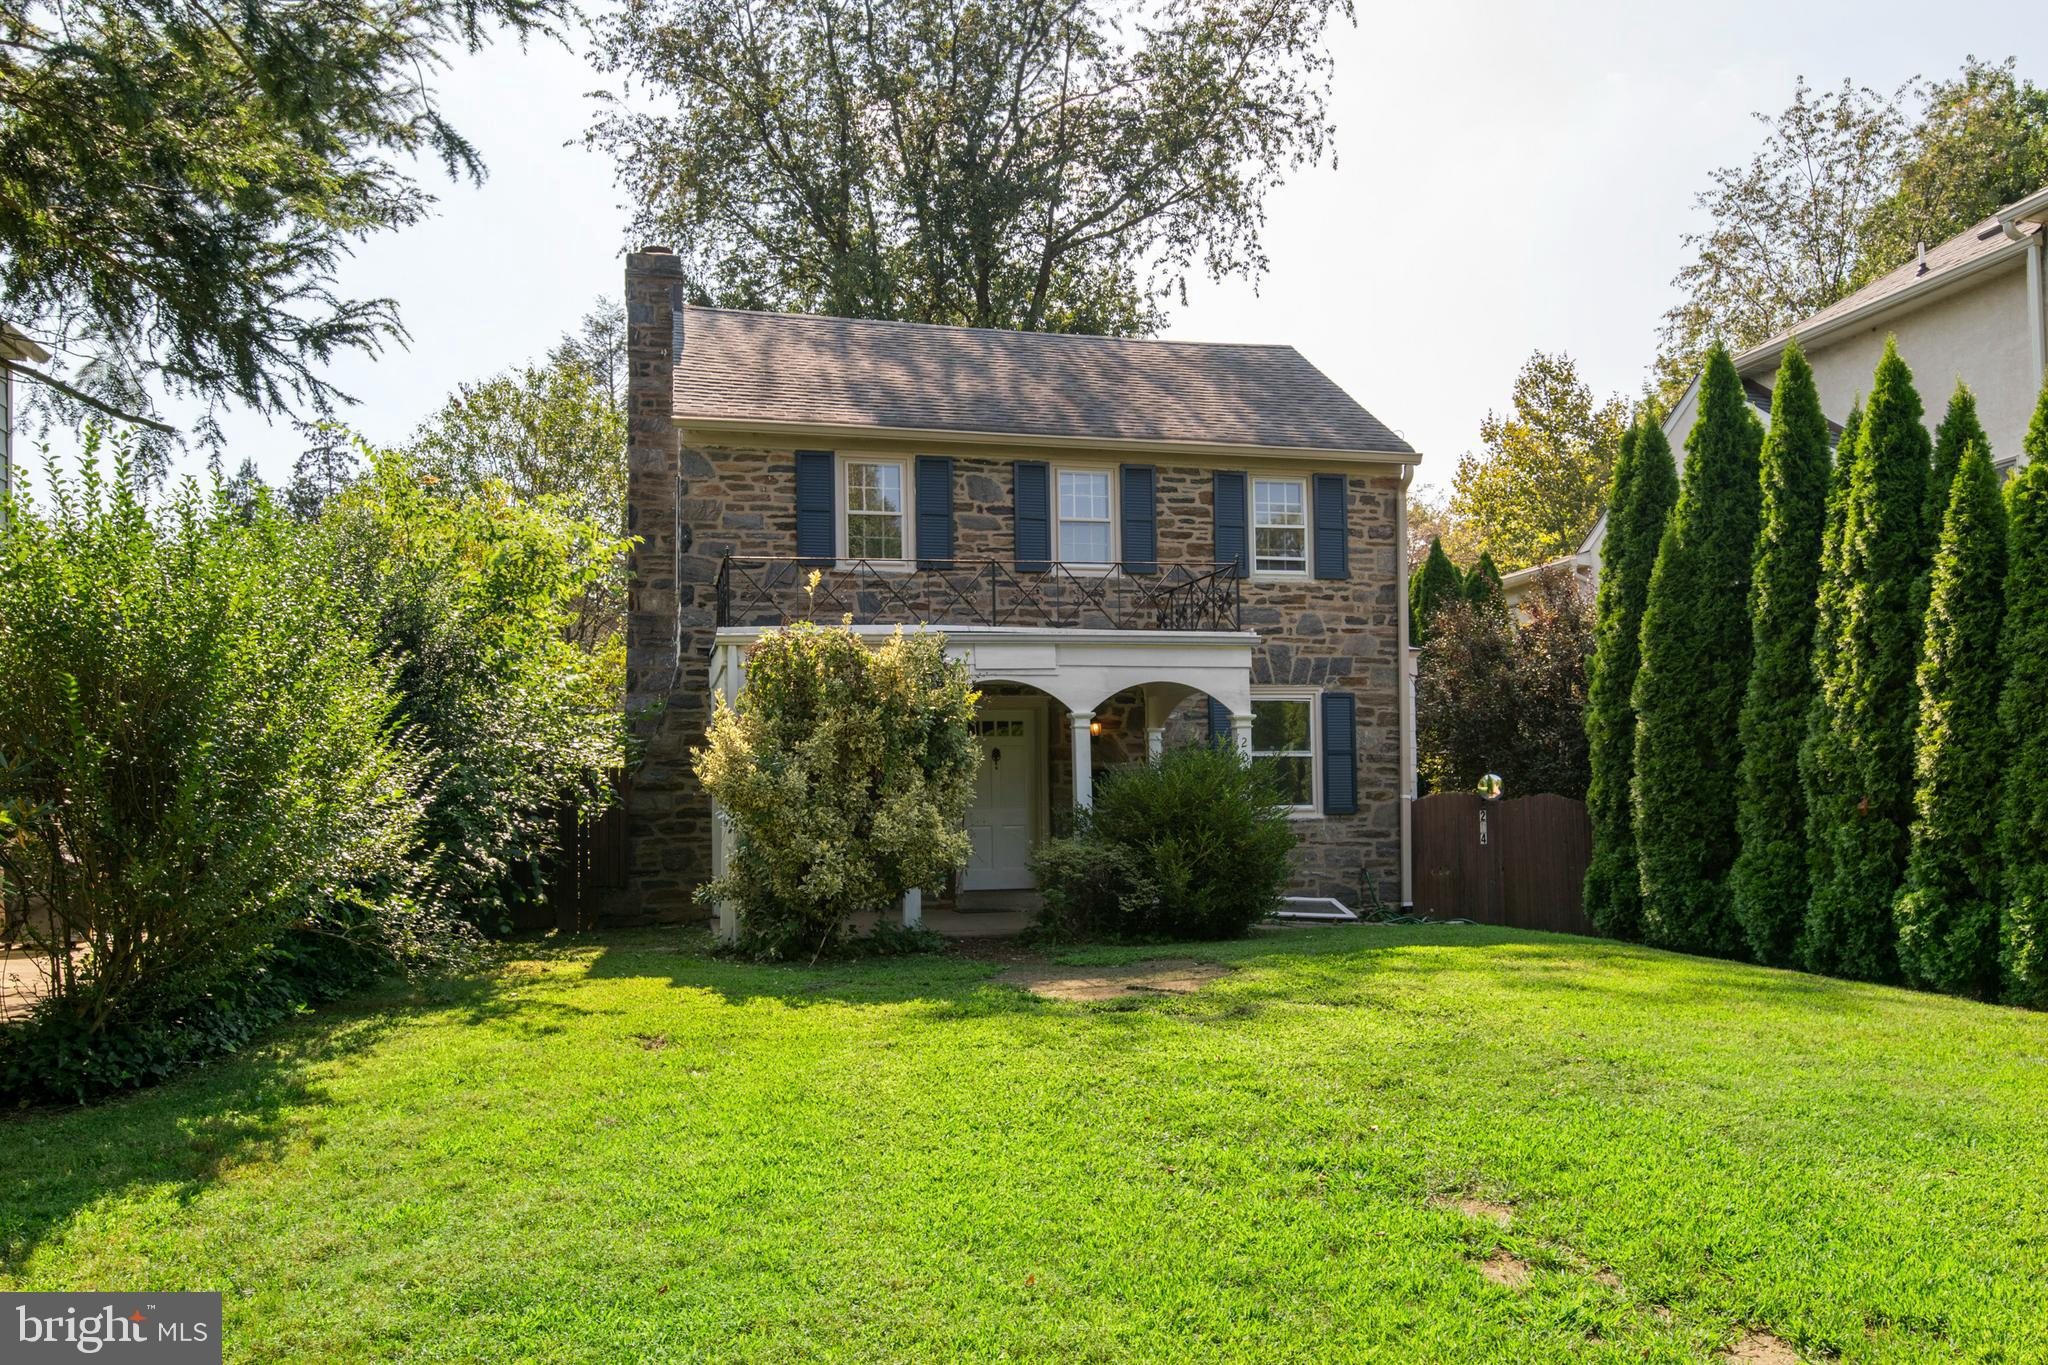 Welcome to this classic stone front, center hall colonial, set far back from the street with a large welcoming front porch just perfect for outdoor entertaining! . A charming covered porch, overlooking the large front lawn, is perfect for relaxing in privacy. Enter into the living room with gleaming hardwood floors, where you could cozy up in front of the fireplace or have fun game nights with friends. The formal dining room with hardwood floors is perfect for your holiday meals. The eat-in Kitchen was recently renovated with ample cabinets for storage, lots of granite counter space, and sliding glass doors to the outdoor deck, perfect for grilling and summer entertainment. The primary suite has three closets and a renovated bath. Three additional bedrooms and an updated hall bath complete the second floor. In addition, the fully finished basement is a perfect bonus space for a family room or office, and laundry facilities plus additional storage space. Conveniently located, walk-to location; restaurants, train, shopping, and the Cynwyd Biking and Walking Trail. Close to major highways and only 20 minutes from Center City. Now is your chance to make this house your next home! Get your best Present ever! Don't let this slip by.  Move right in and unpack your bags!!